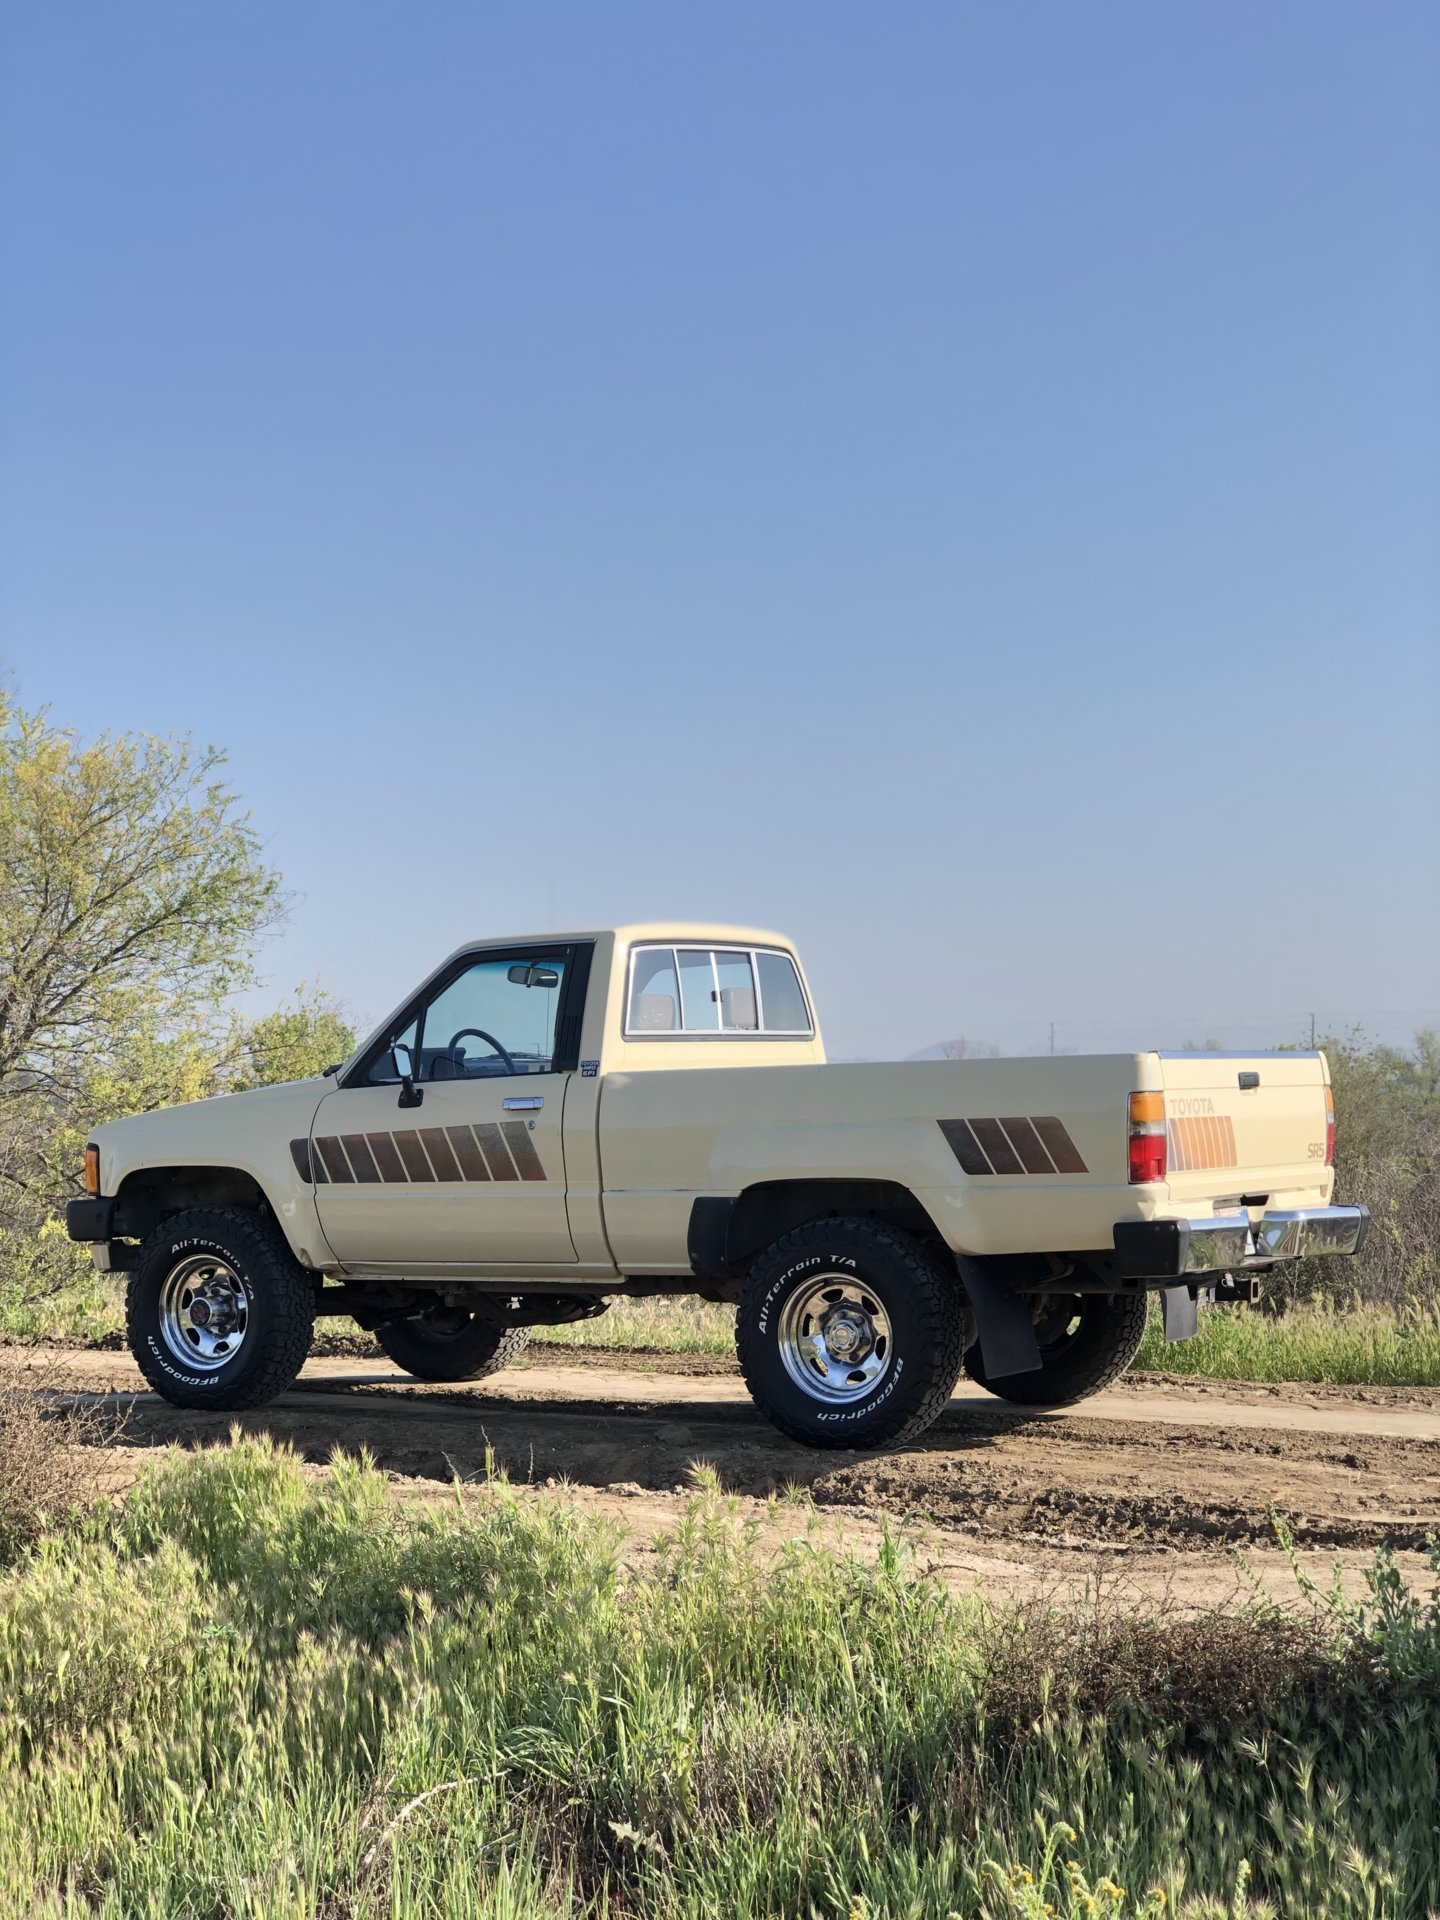 For Sale - SoCal Toyota 1985 22RE SR5 4x4 Pick Up | IH8MUD Forum